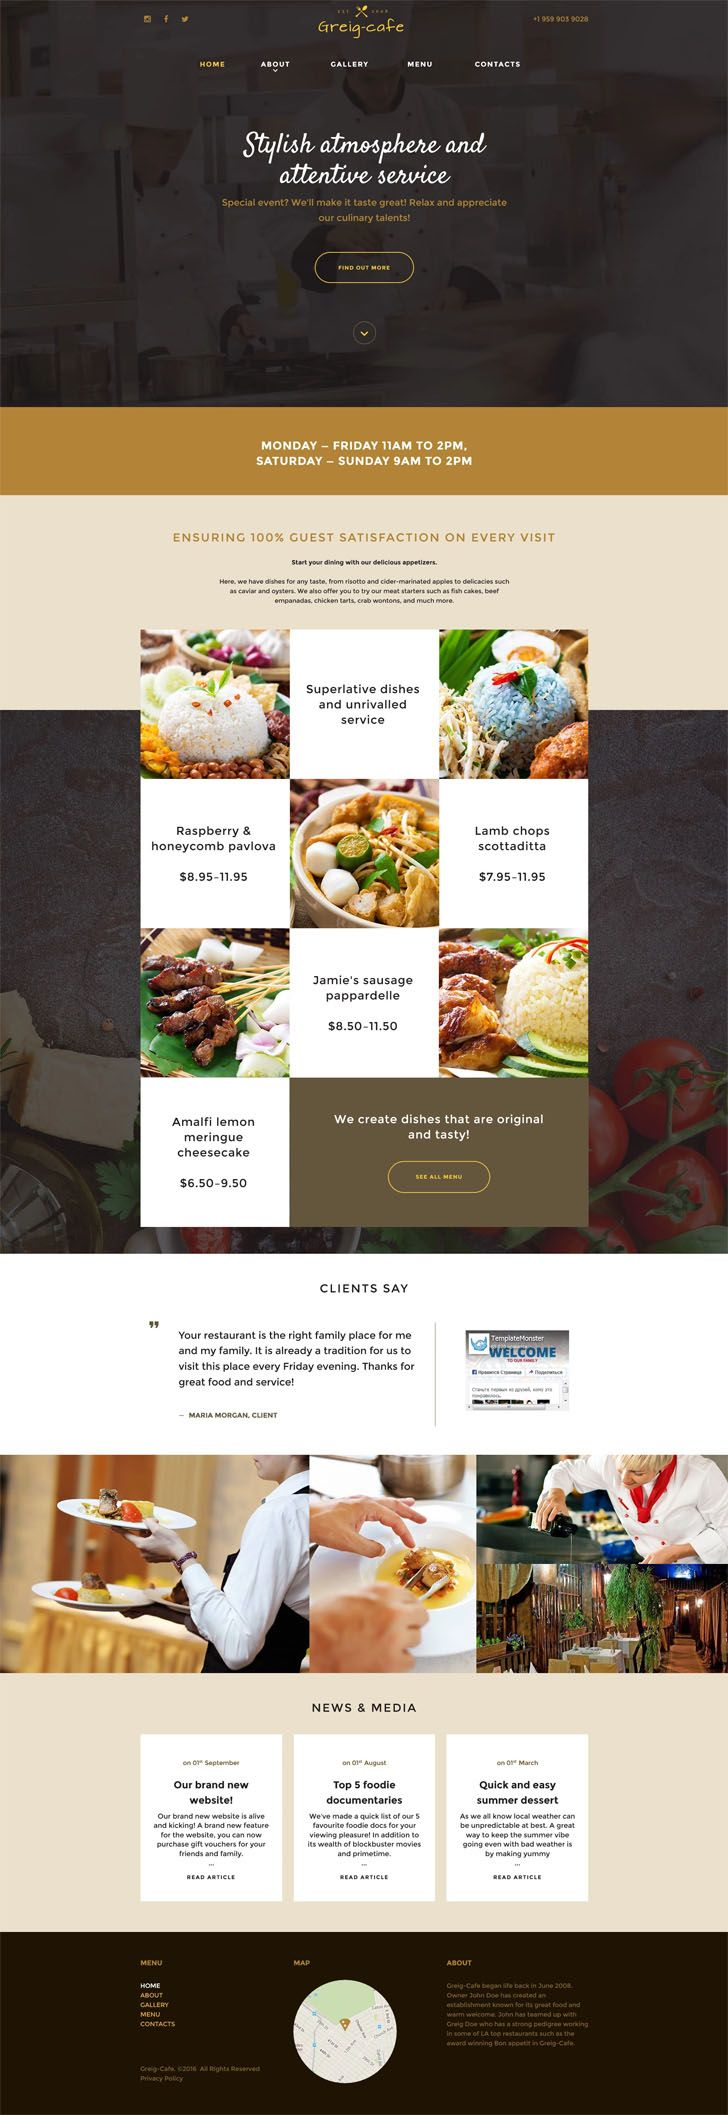 This #responsive #cafeteria #website #template boasts a visually rich design to promote your dishes with a mouth-watering effect. Its full-screen header both introduces your eatery and gives an access to social icons, menu items, and CTA buttons in the ghost style. Its parallax background is dimmed out to bring these elements to the forefront. In the main block, dishes are shown in squares, as on a chessboard. Sleek hover effects allow visitors to focus on each of them. Boxes used to outline…